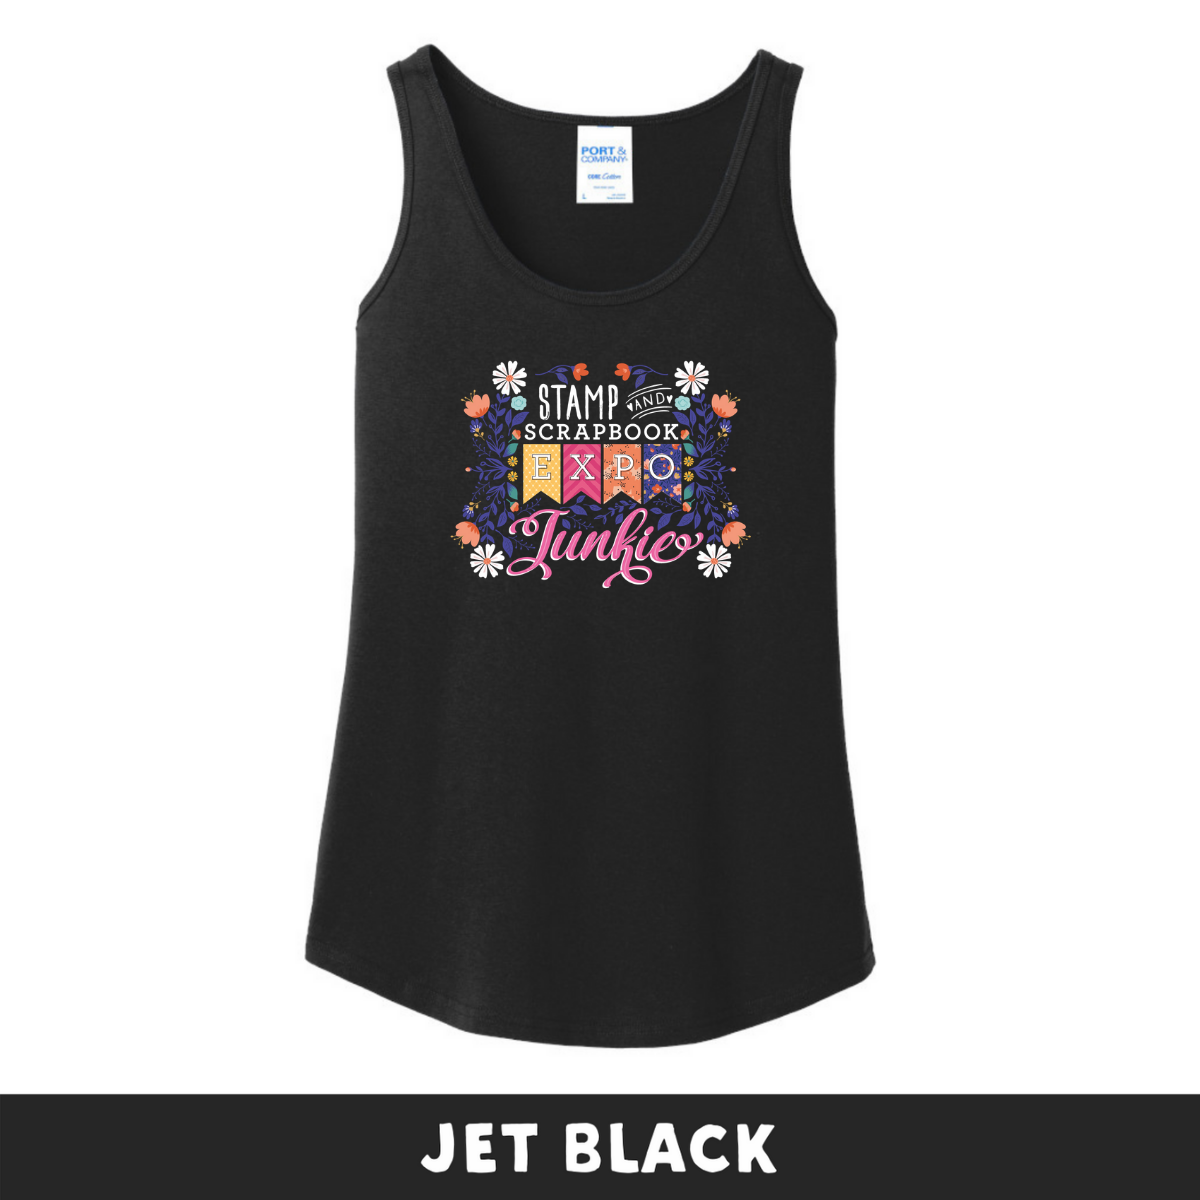 Jet Black -  Woman's Cut Tank - SSBE Junkie With/Flowers